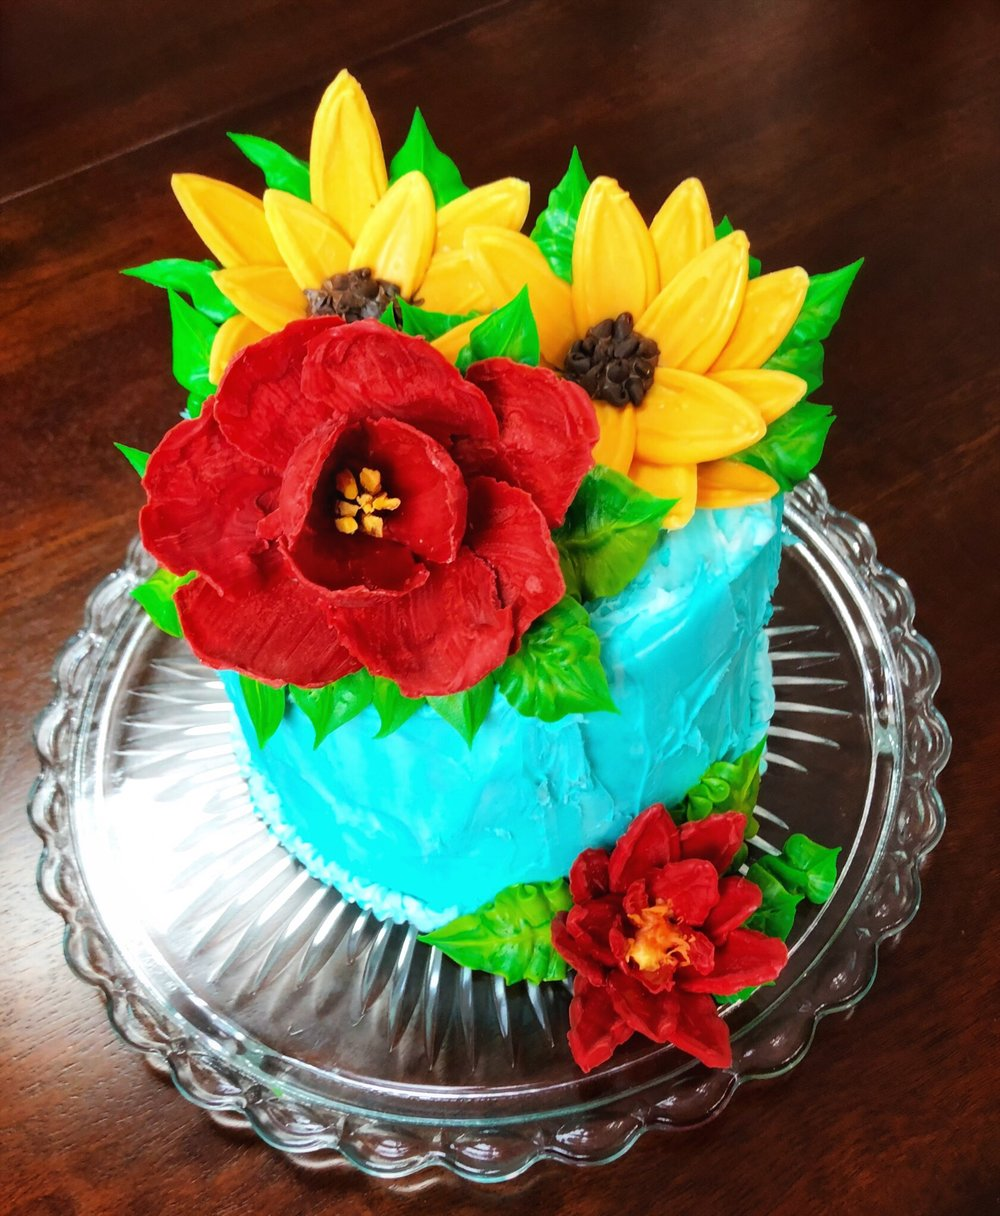 Chocolate Flowers with buttercream leaves